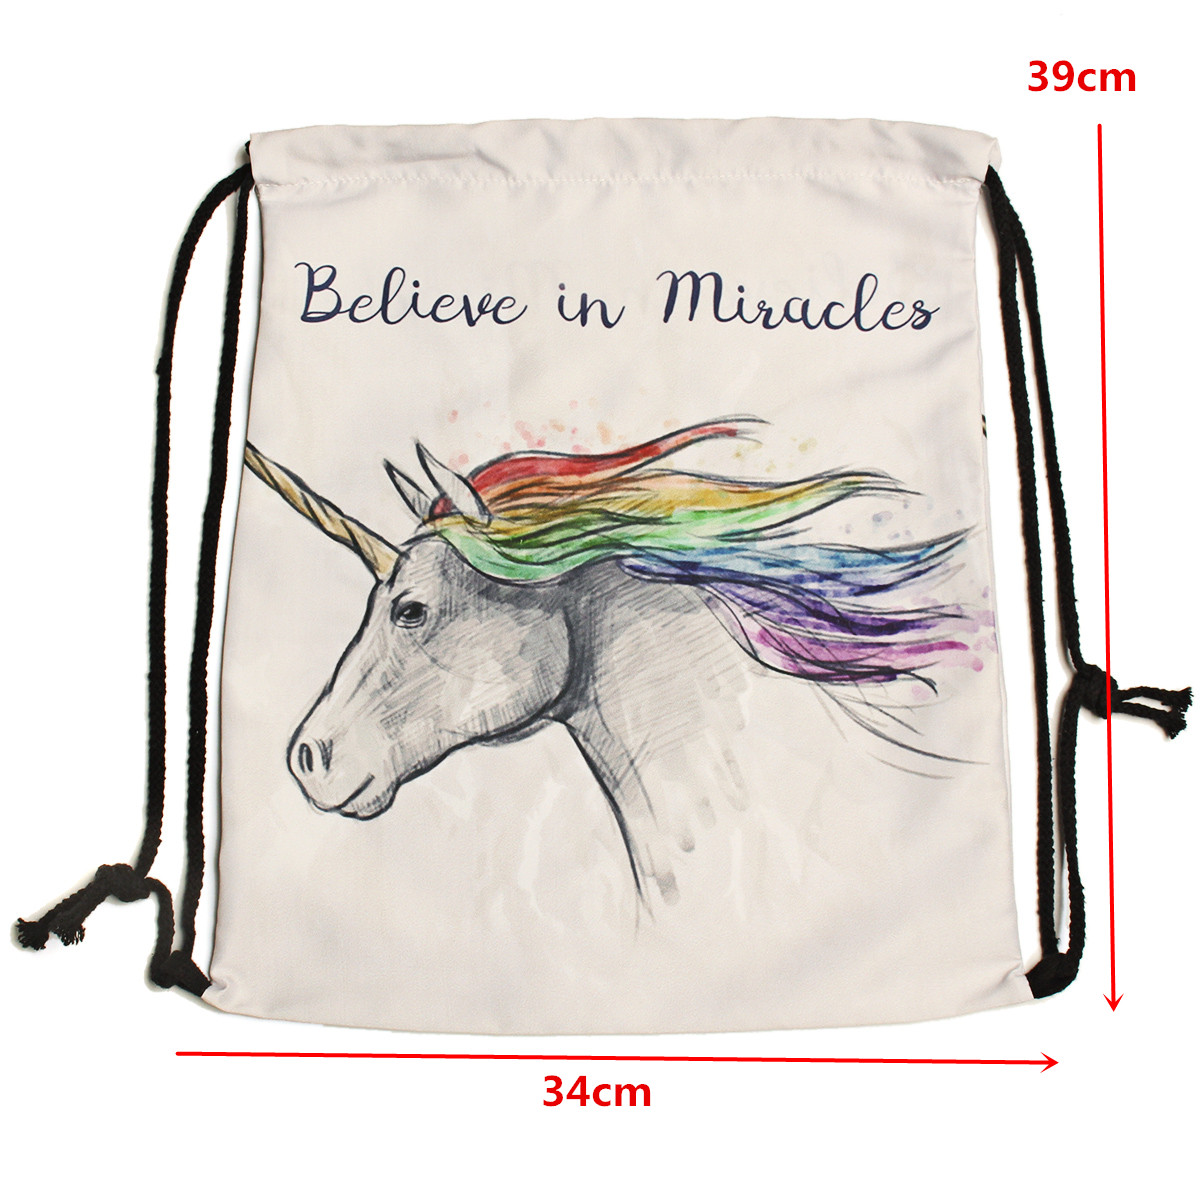 IPRee® Unicorn Polyester Drawstring Backpack Travel Pouch Student College Schoolbag Rucksack